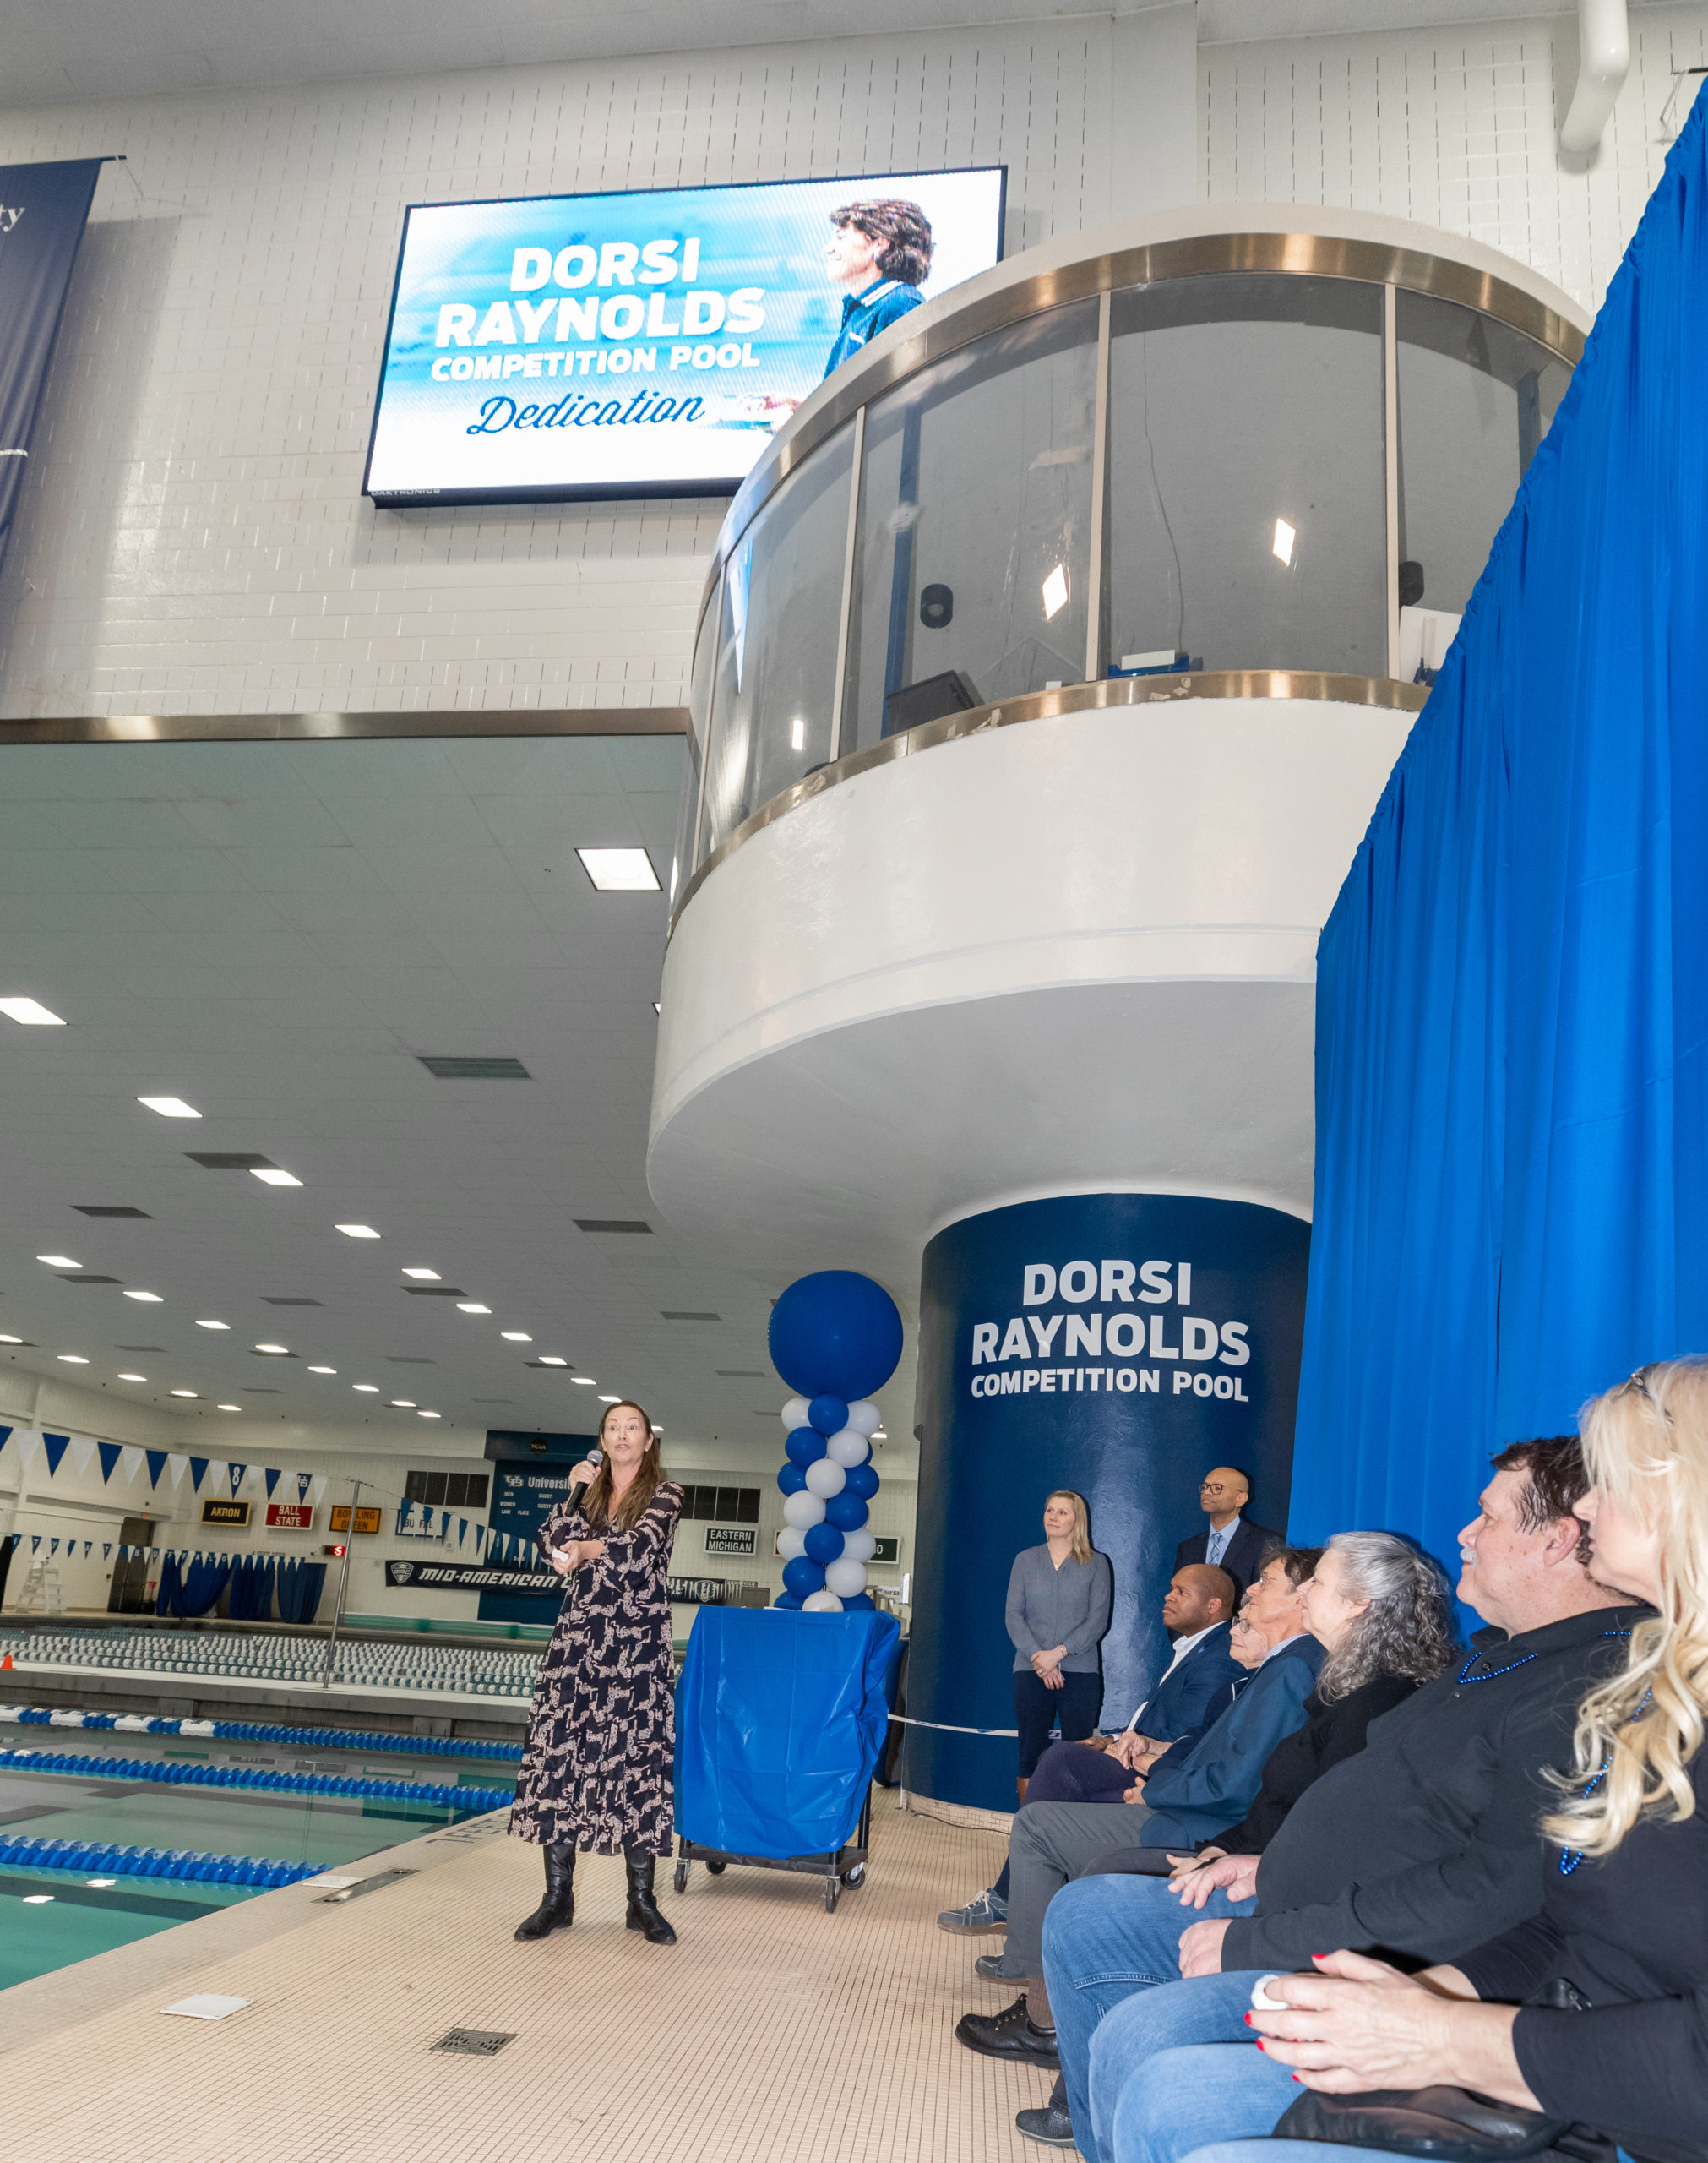 Photo from the Dorsi Raynolds Competition Pool naming ceremony